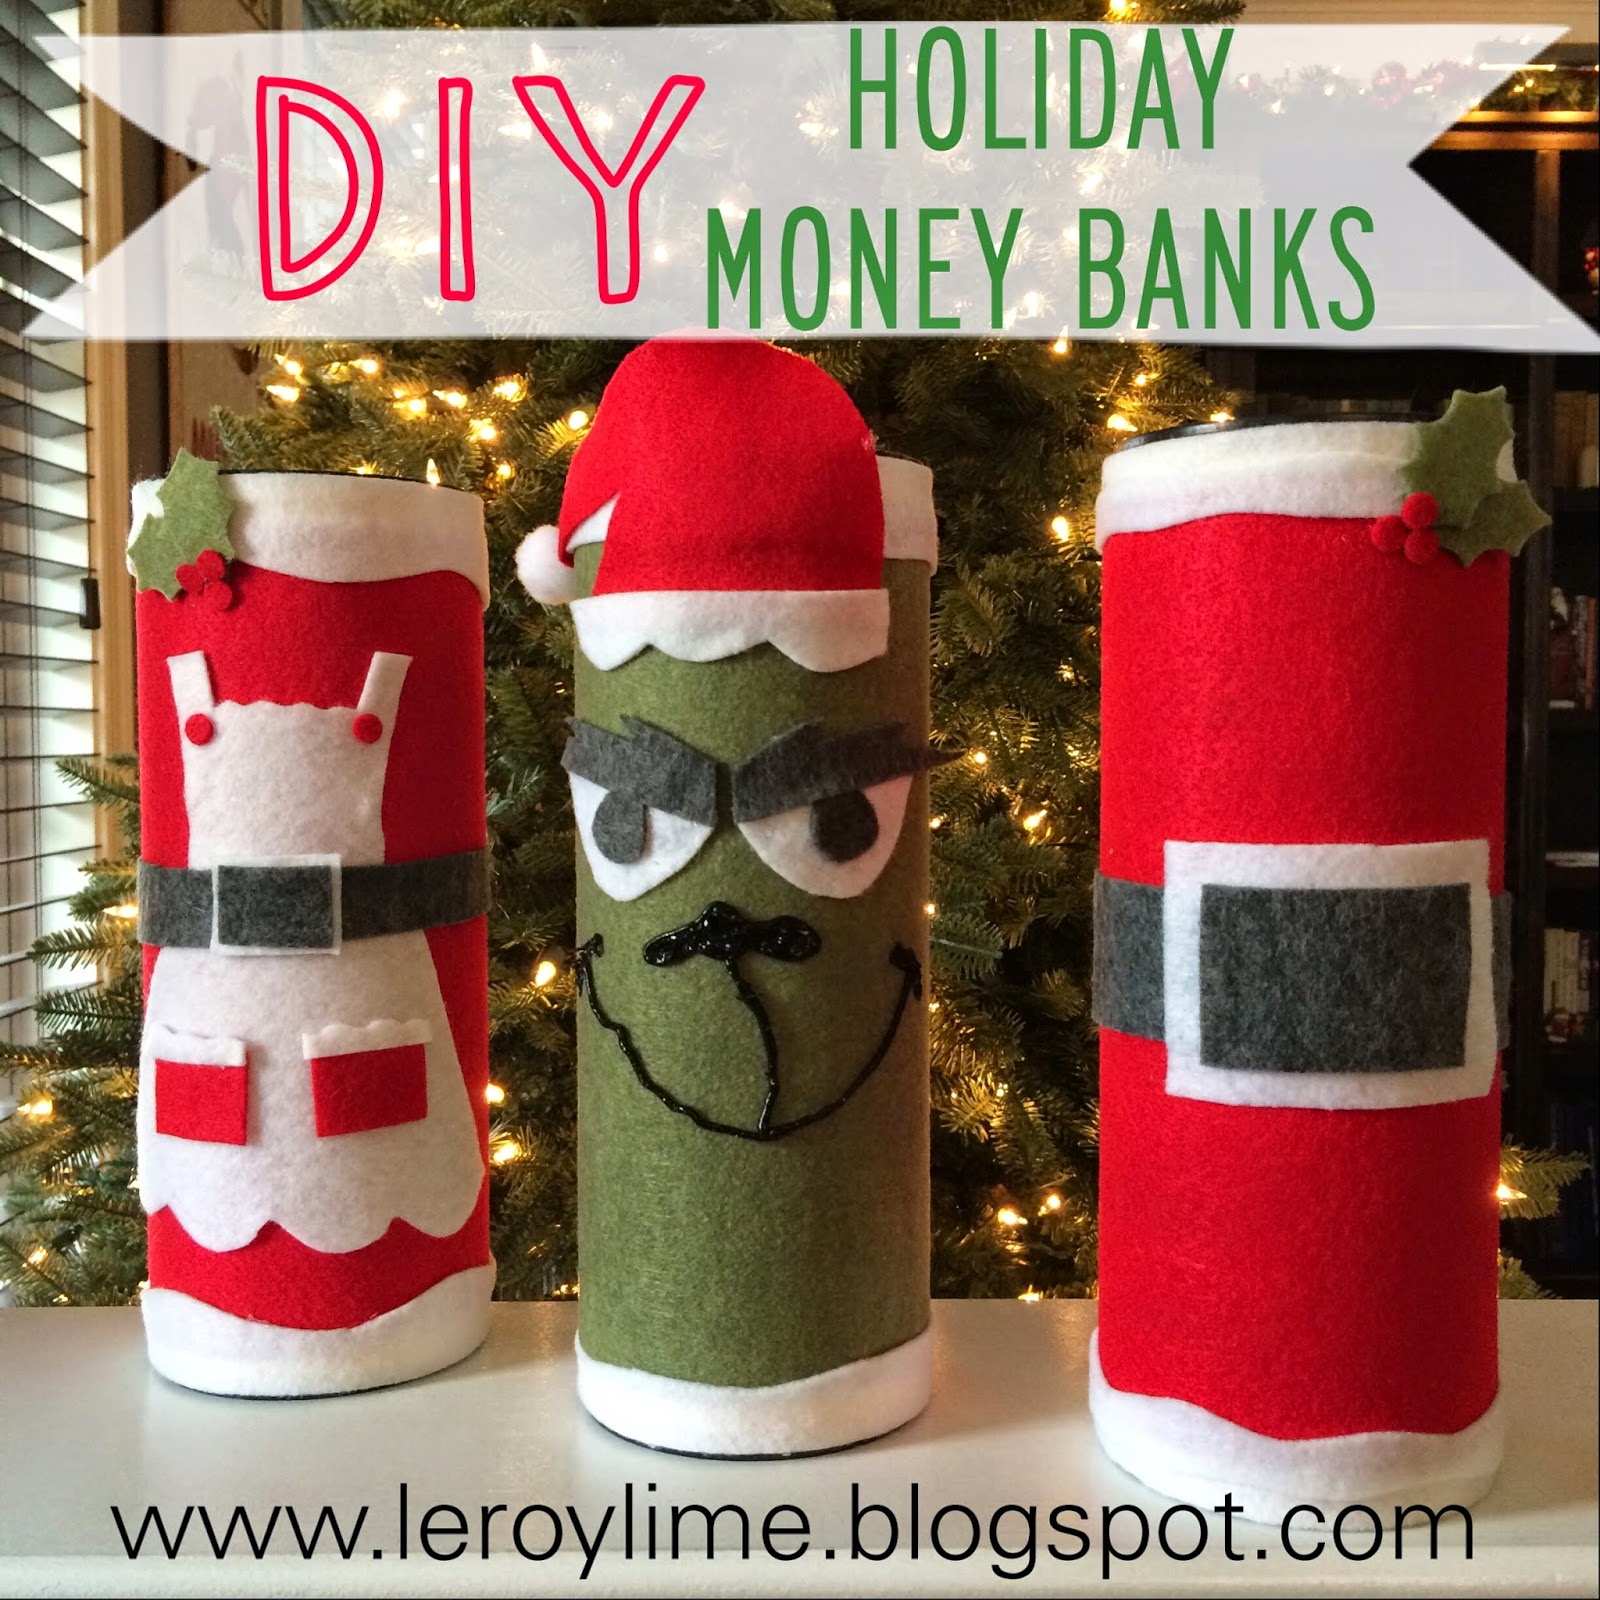 DIY Holiday Money Banks - An Upcycle Project, Felt Craft - LeroyLime